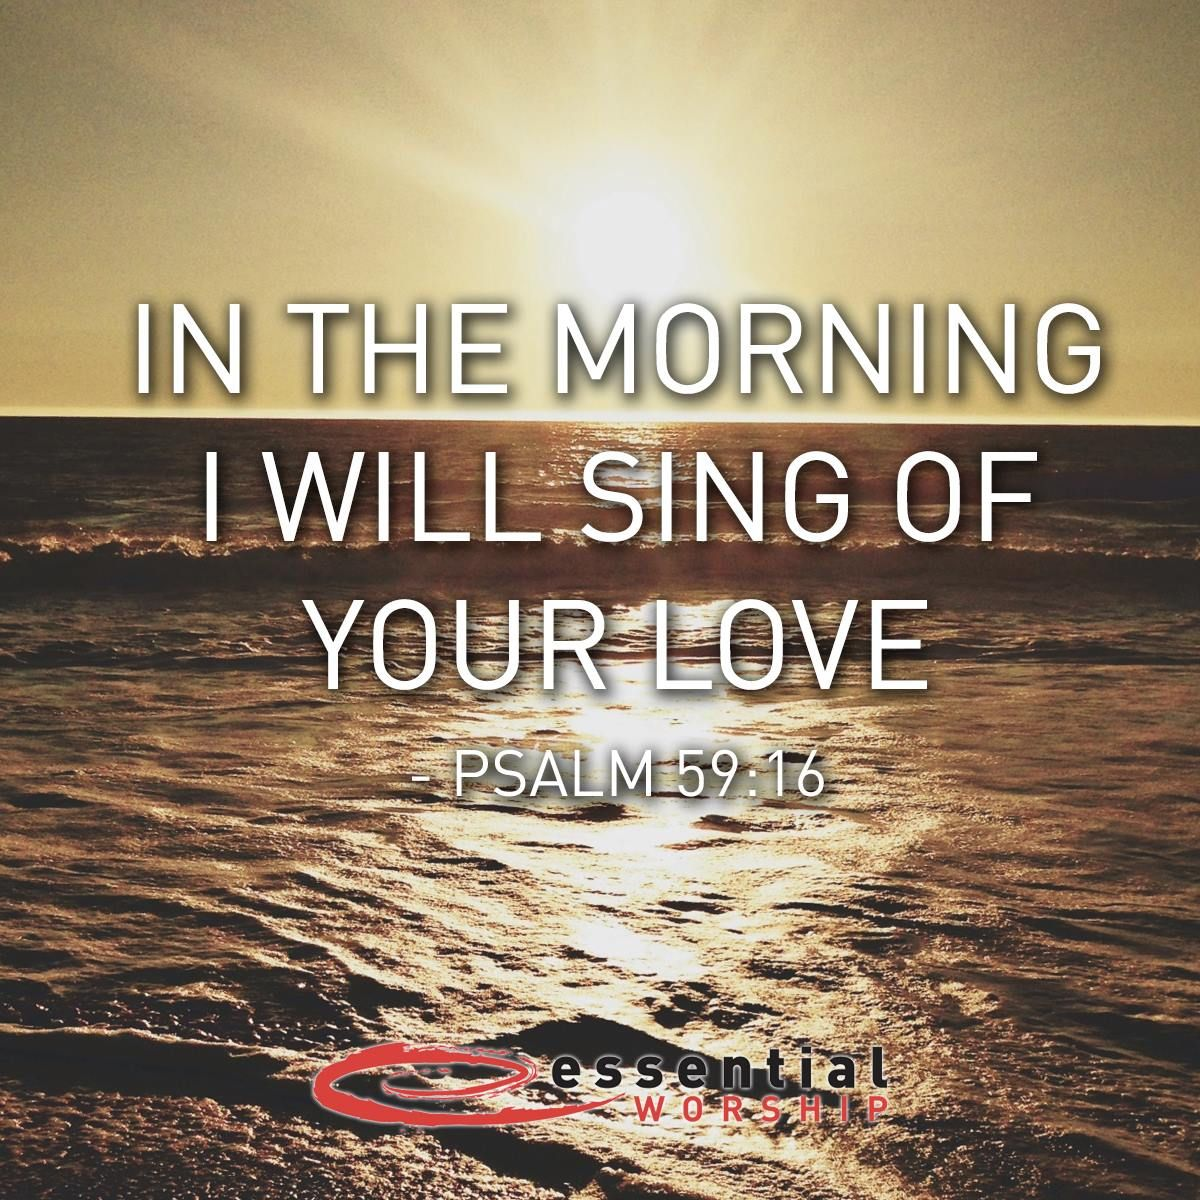 In the morning I will sing of your love